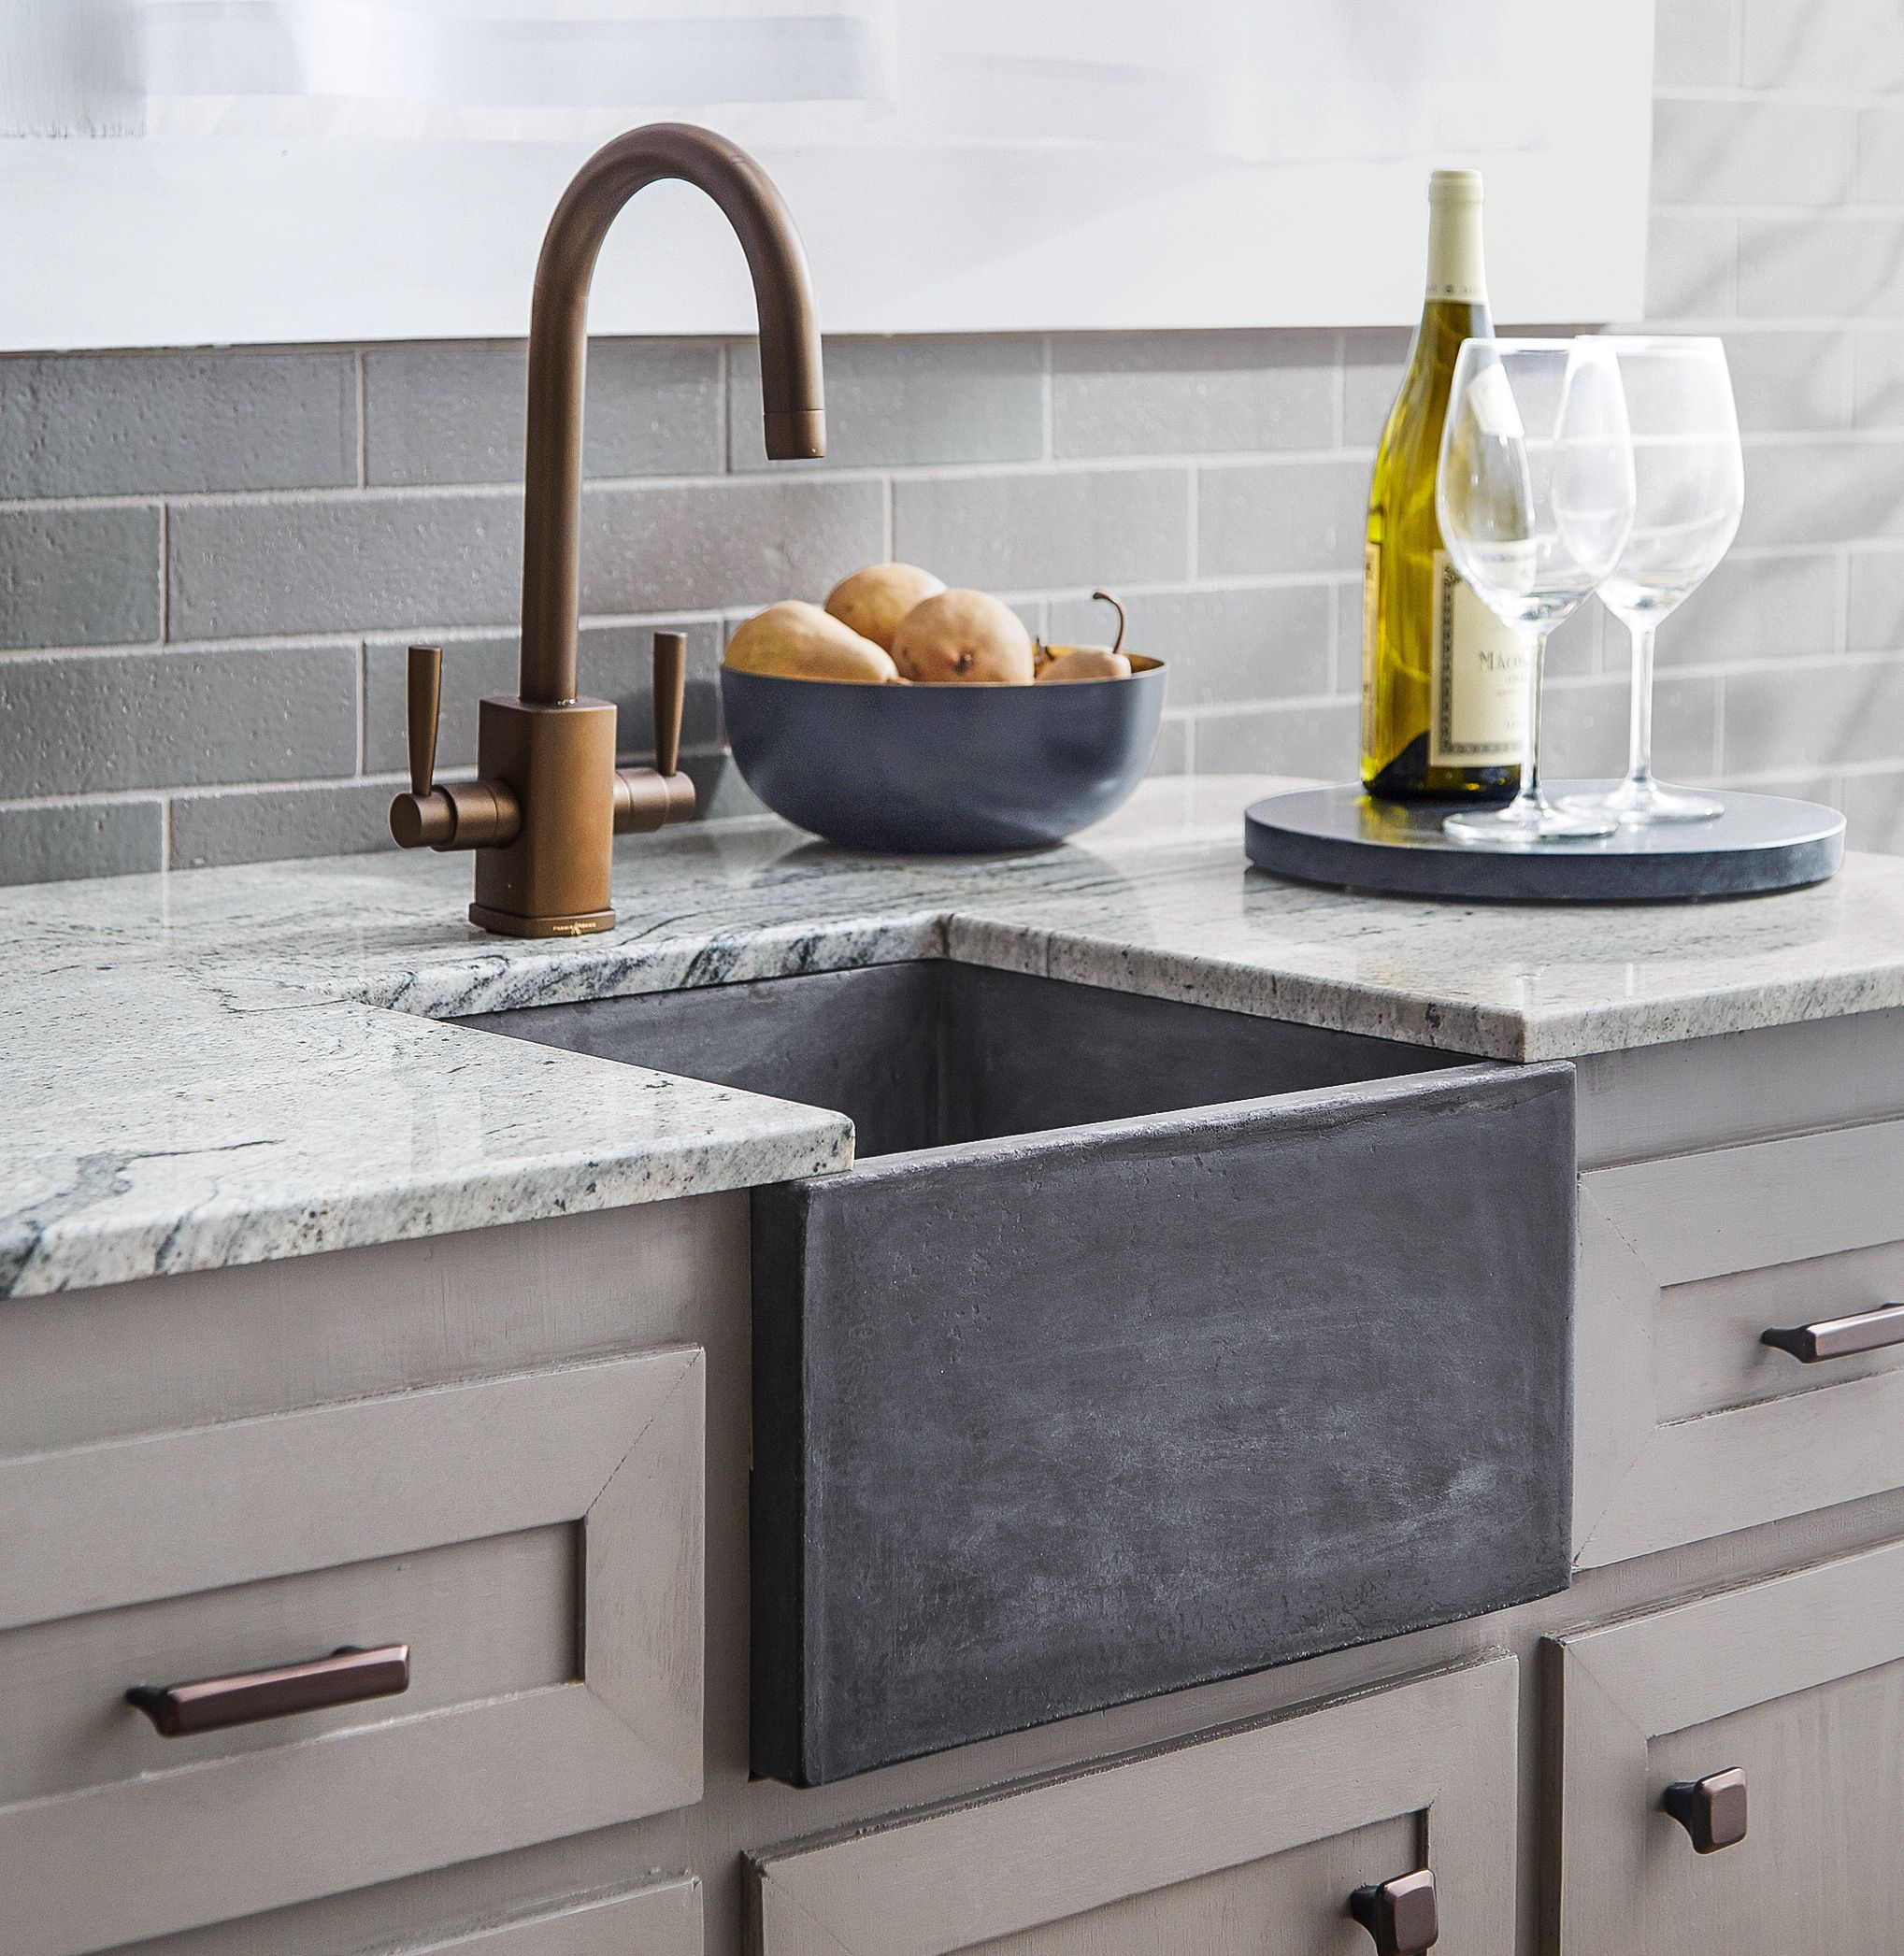 Kitchen Remodeling Choosing A New Kitchen Sink With Images